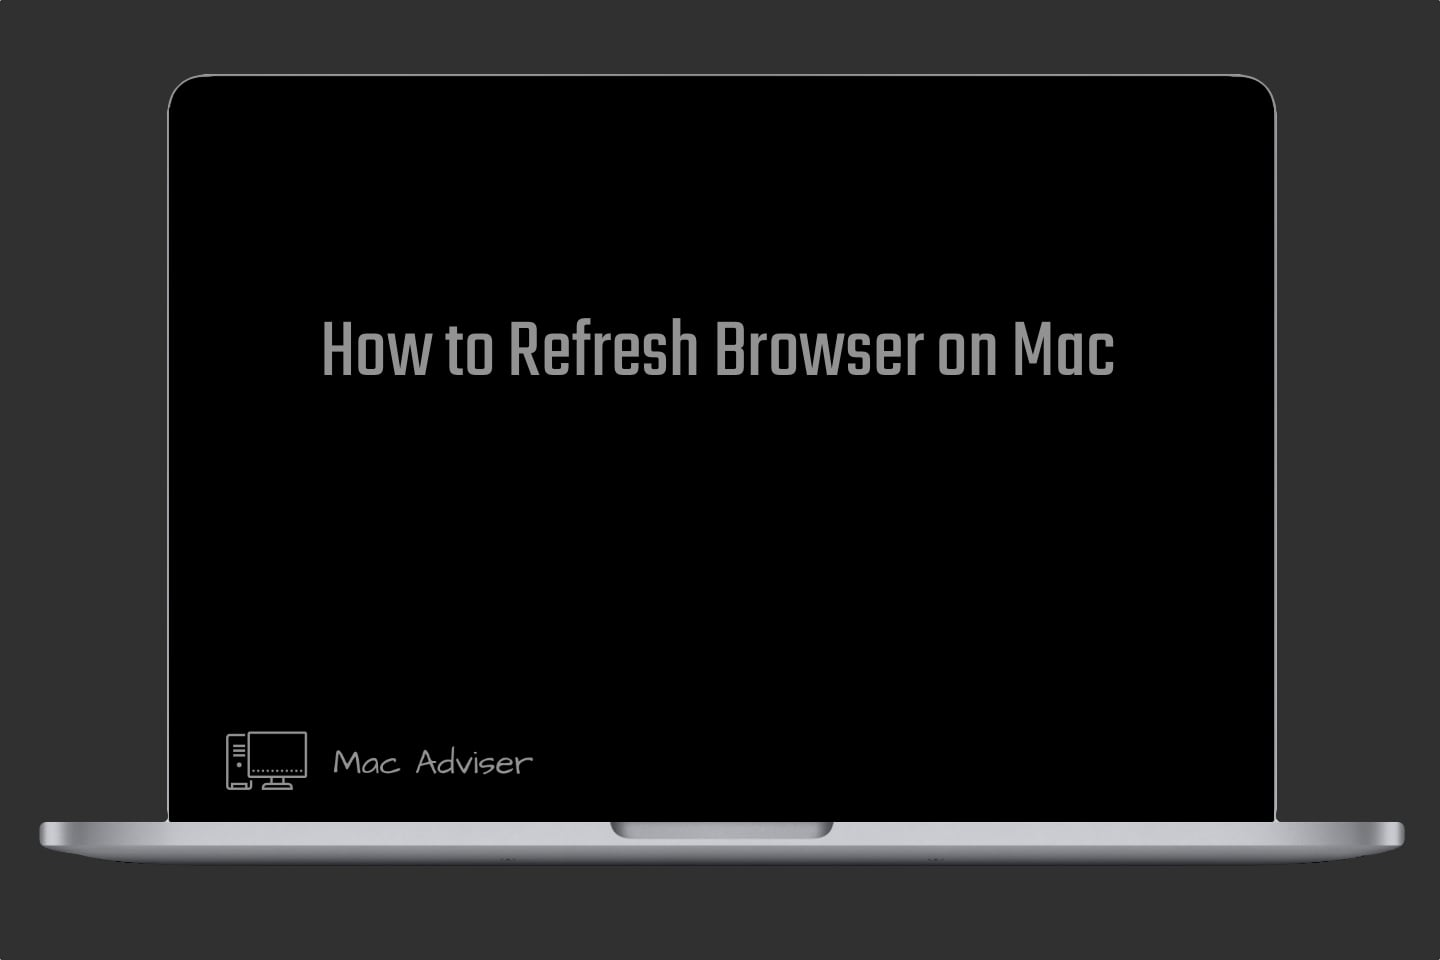 How to Refresh Browser on Mac